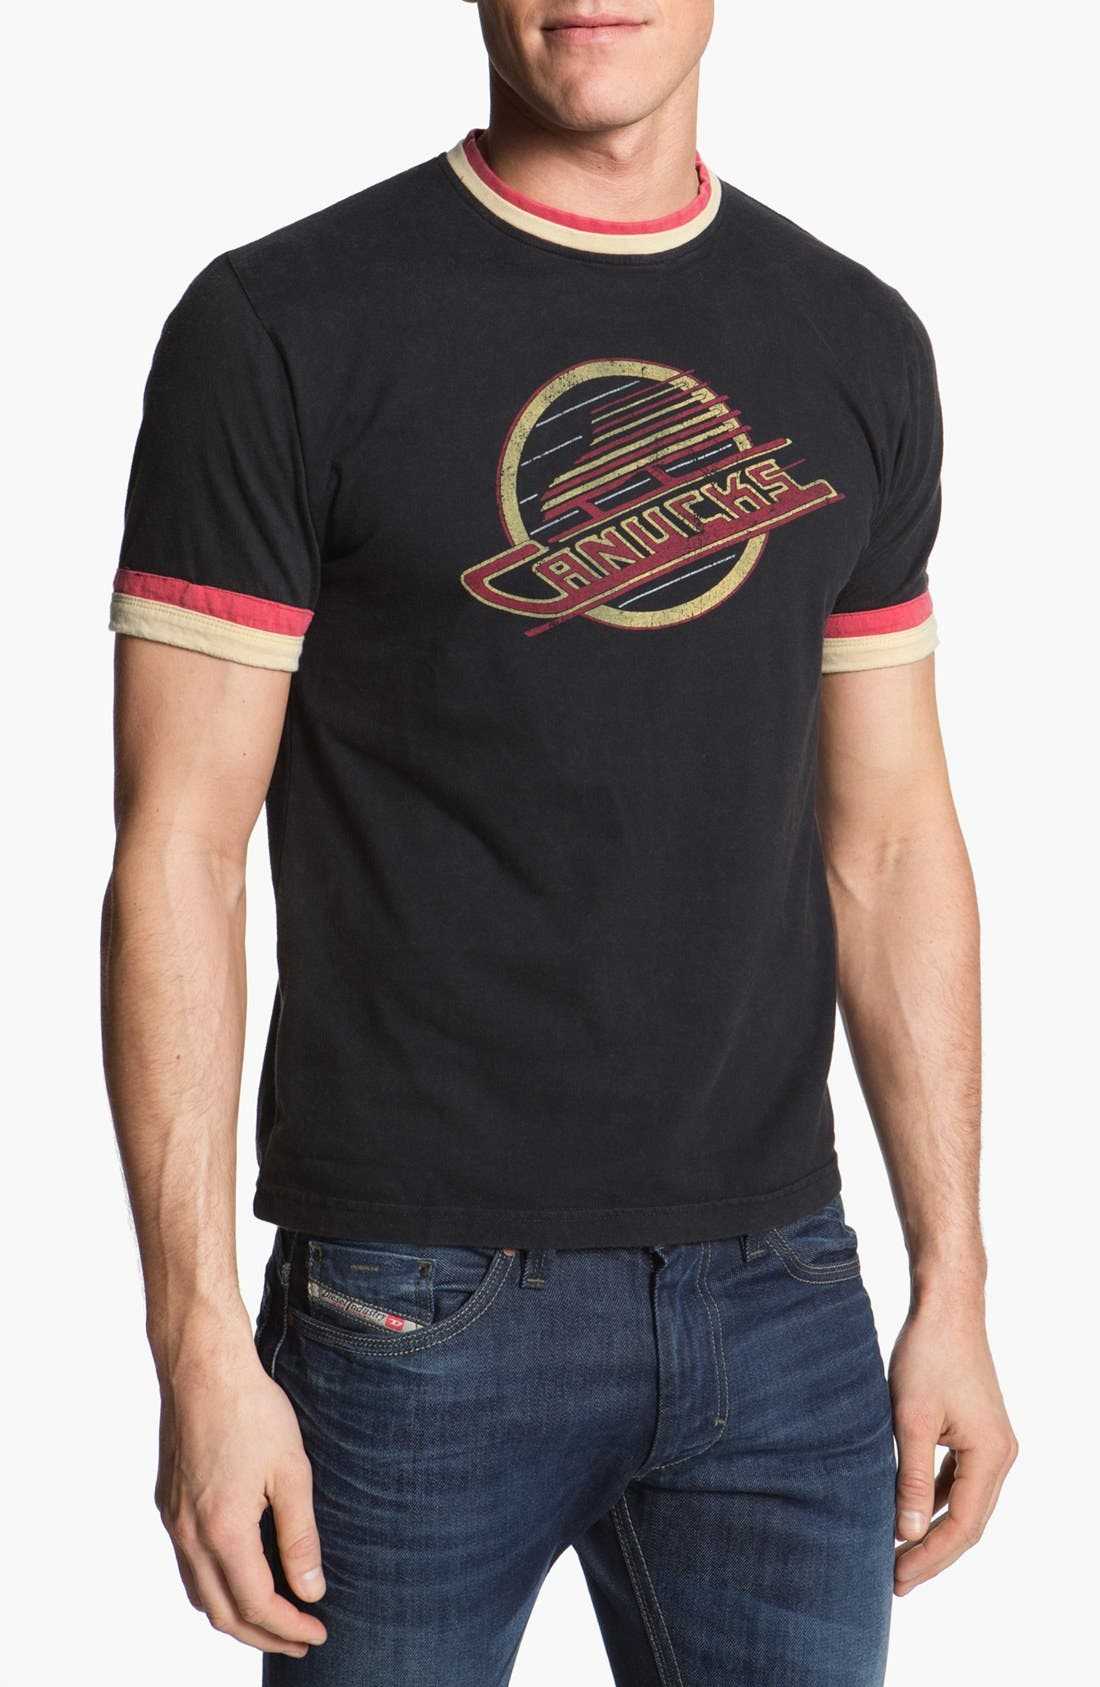 Alternate Image 1 Selected - Red Jacket 'Vancouver Canucks - Remote Control' T-Shirt